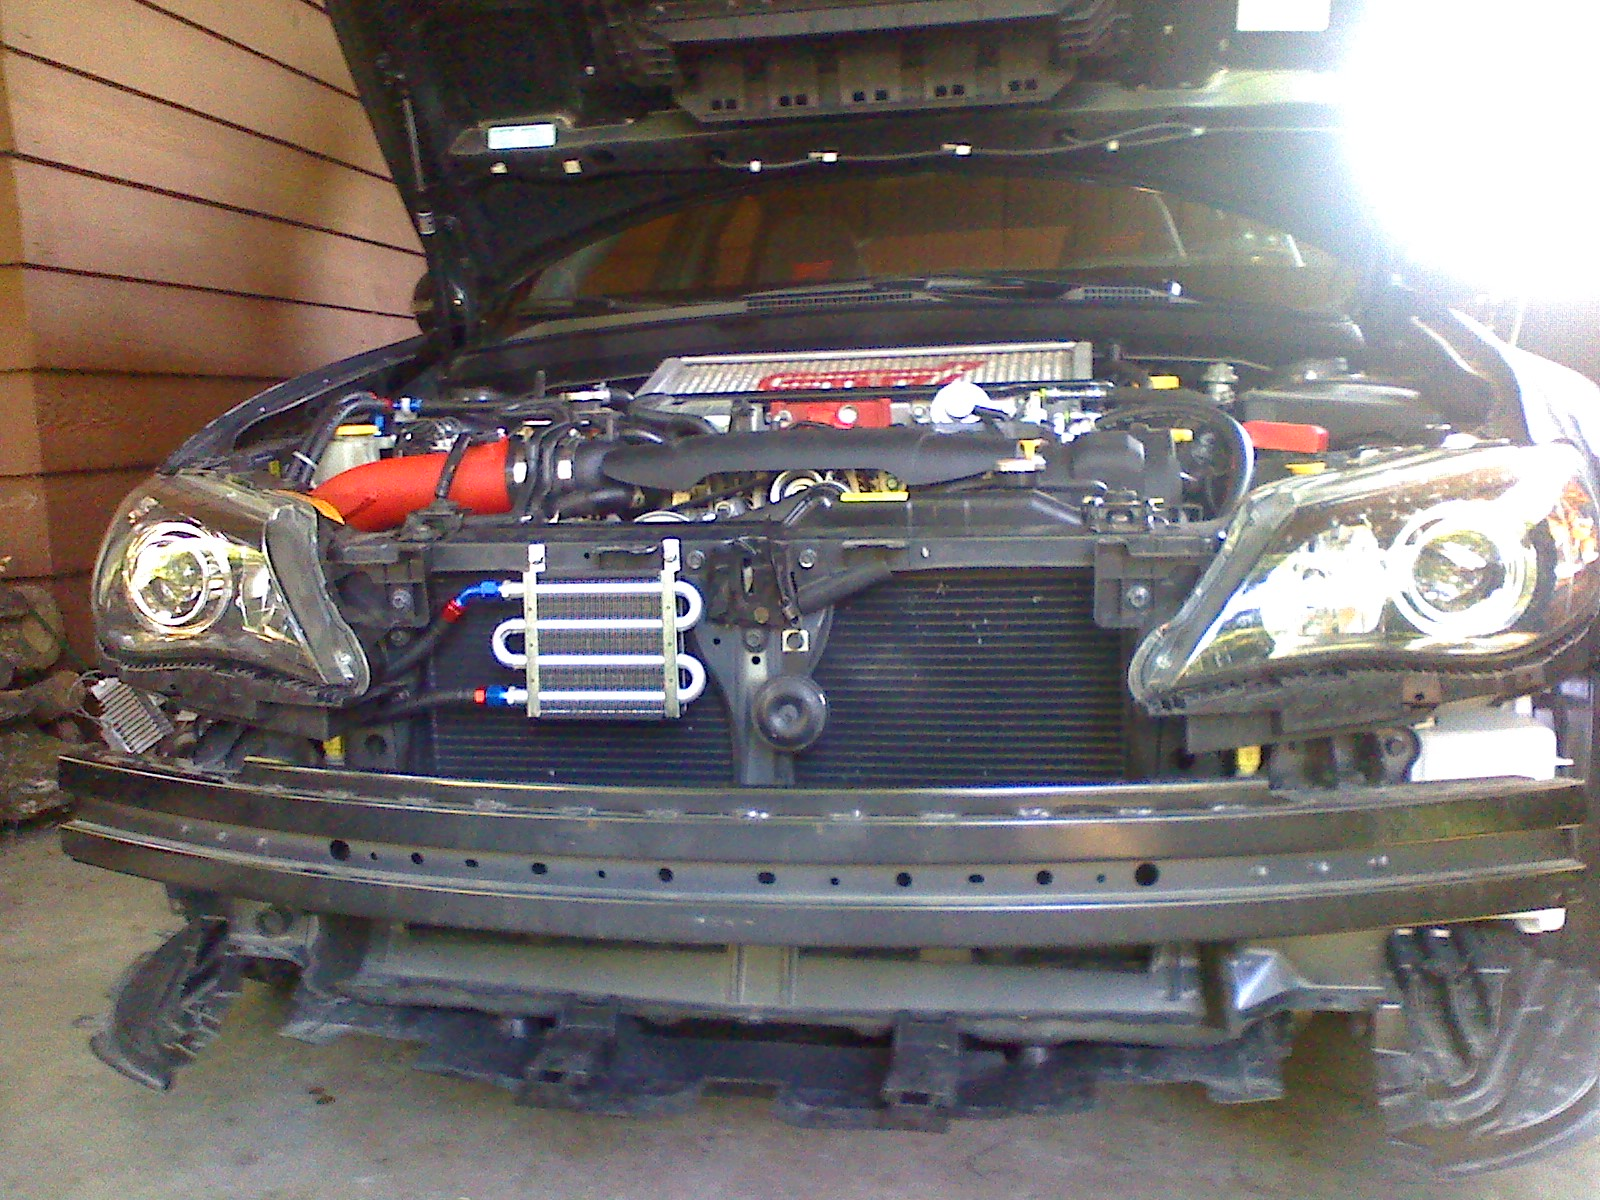 Power steering squeal fixed!!-0529101841a-jpg